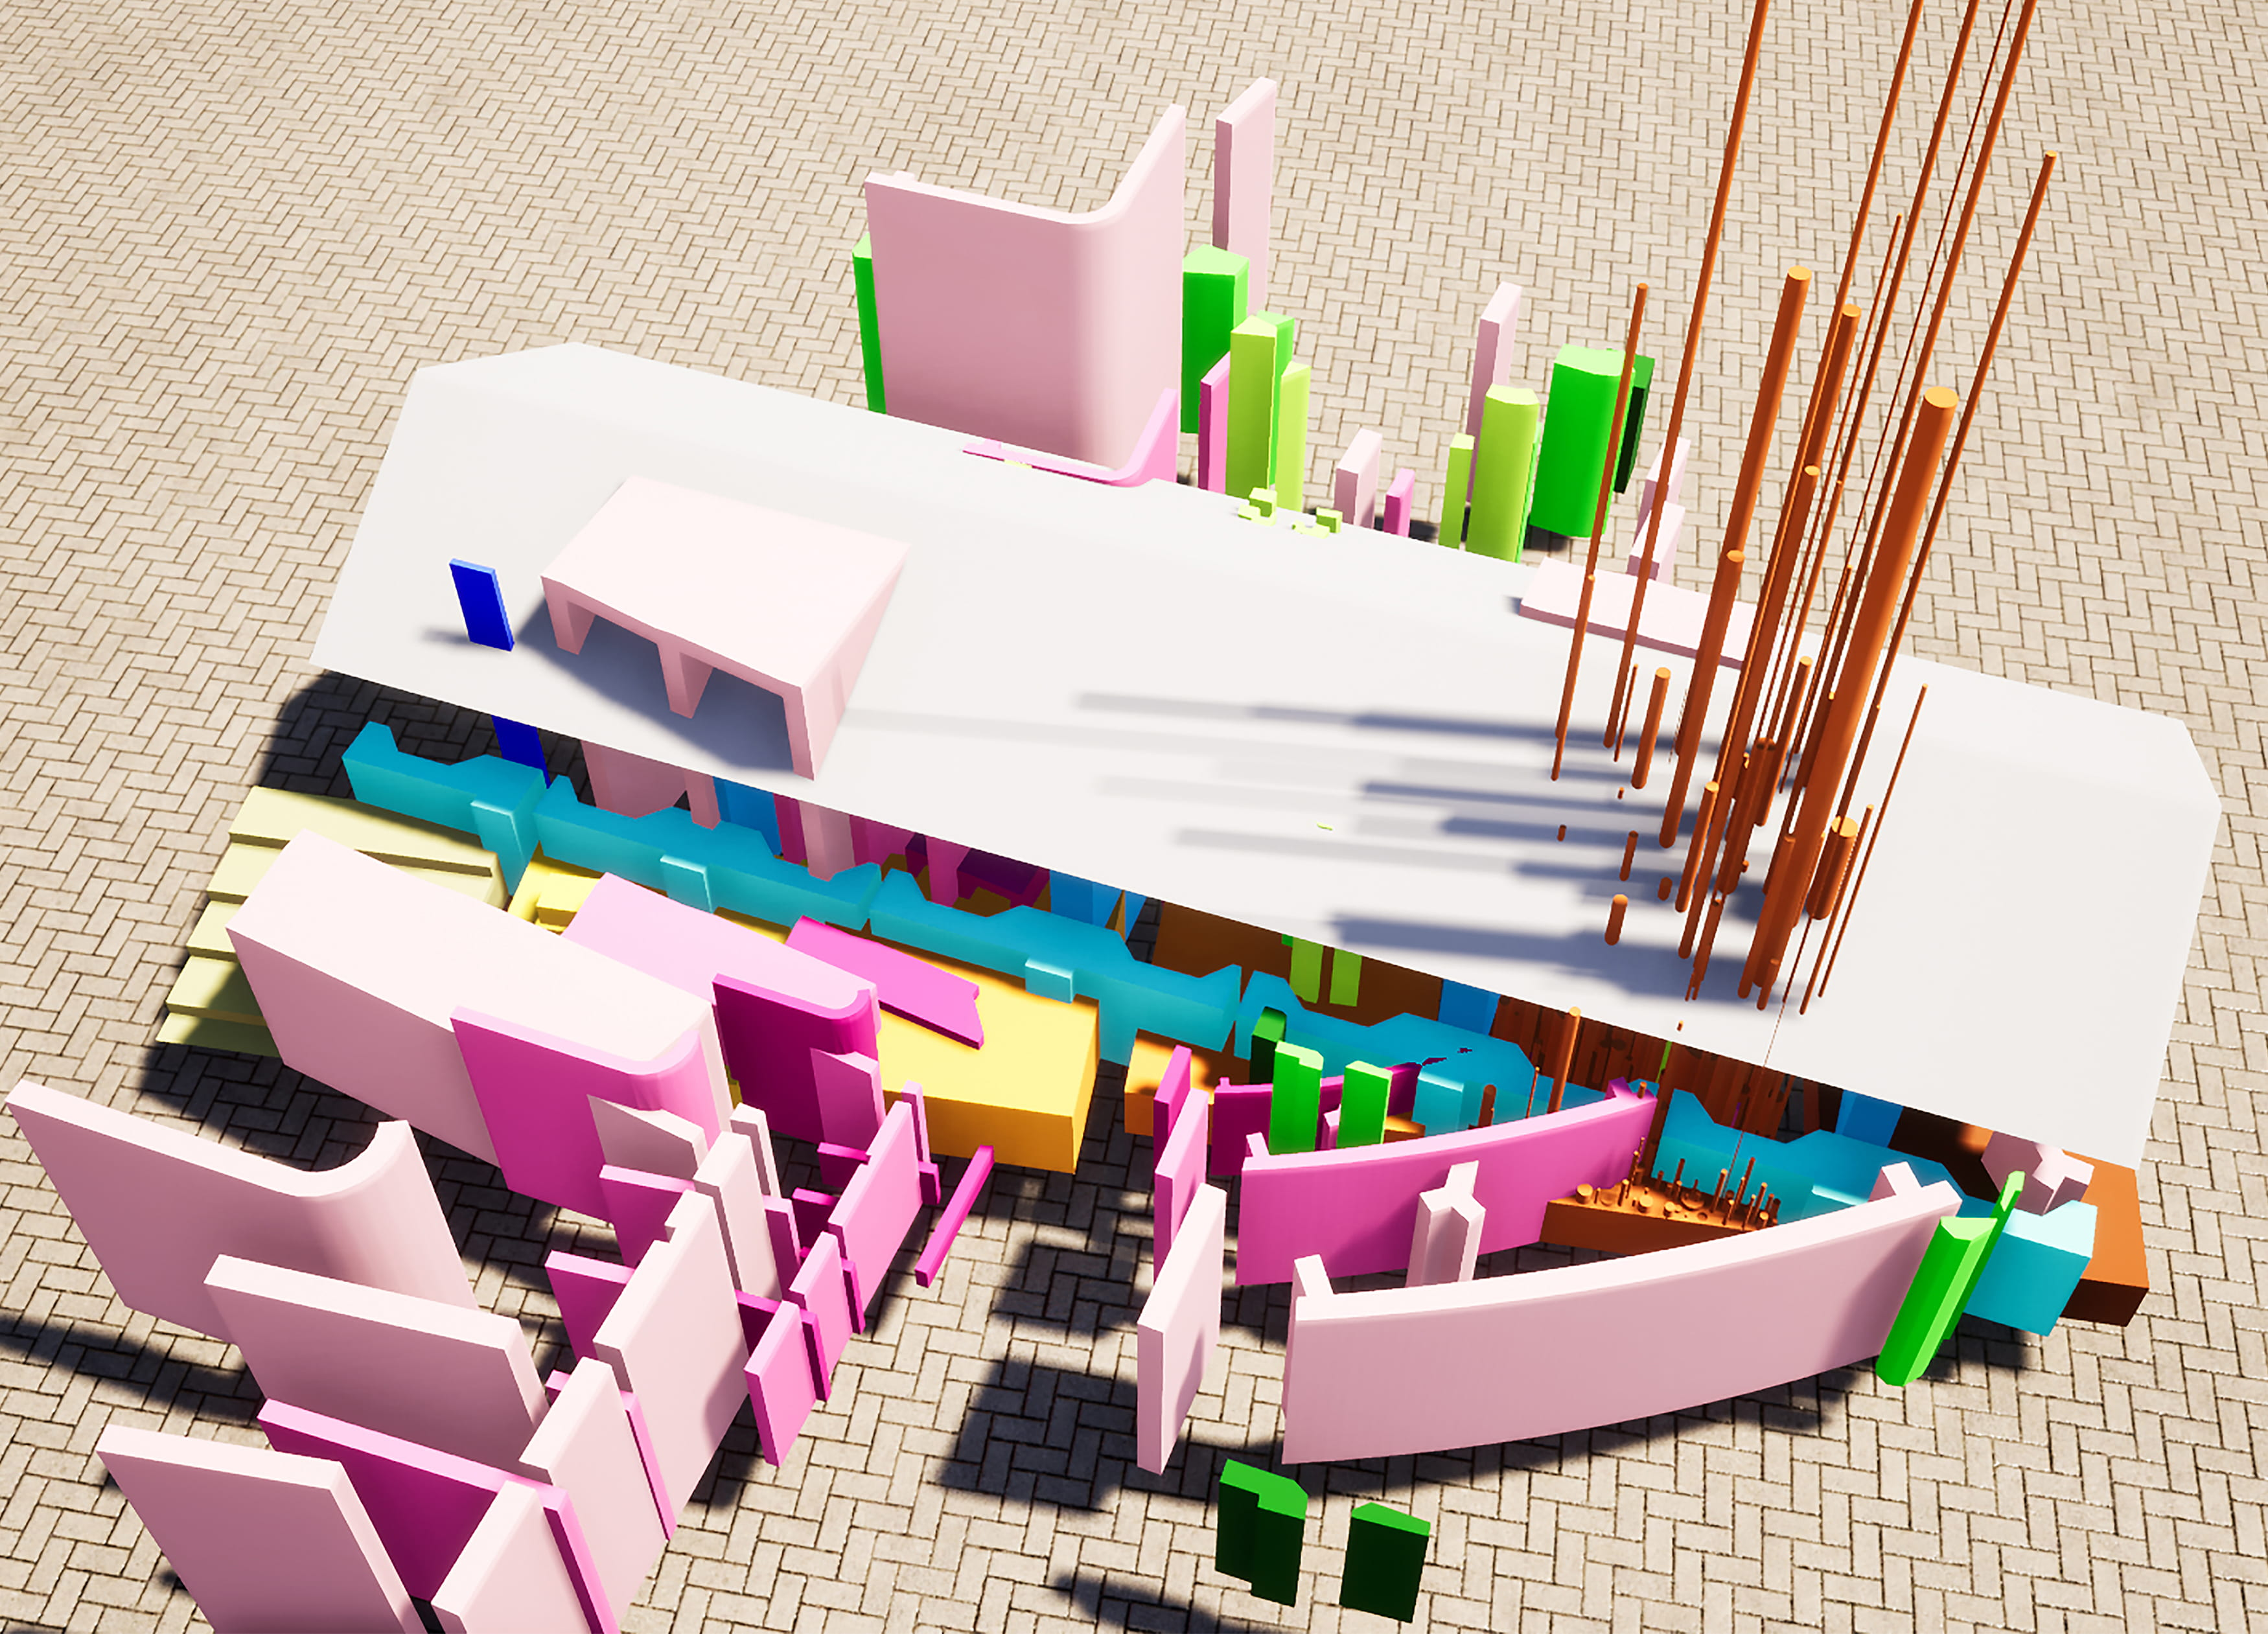 This model is an approach to the conceptual drawing, exploring 3-dimensional spatial qualities.